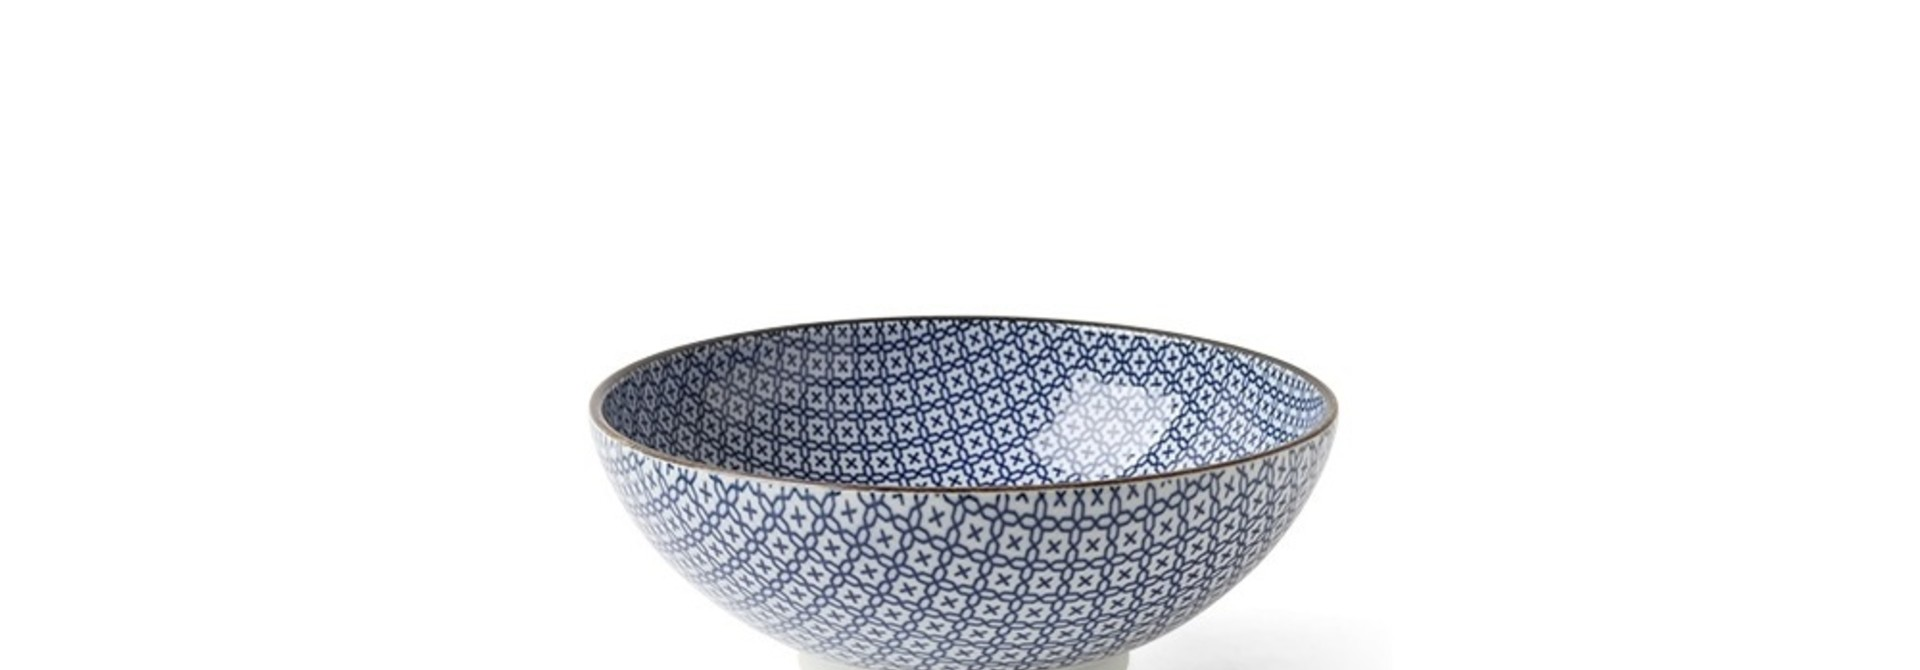 Blue and White Mosaic - Bowl